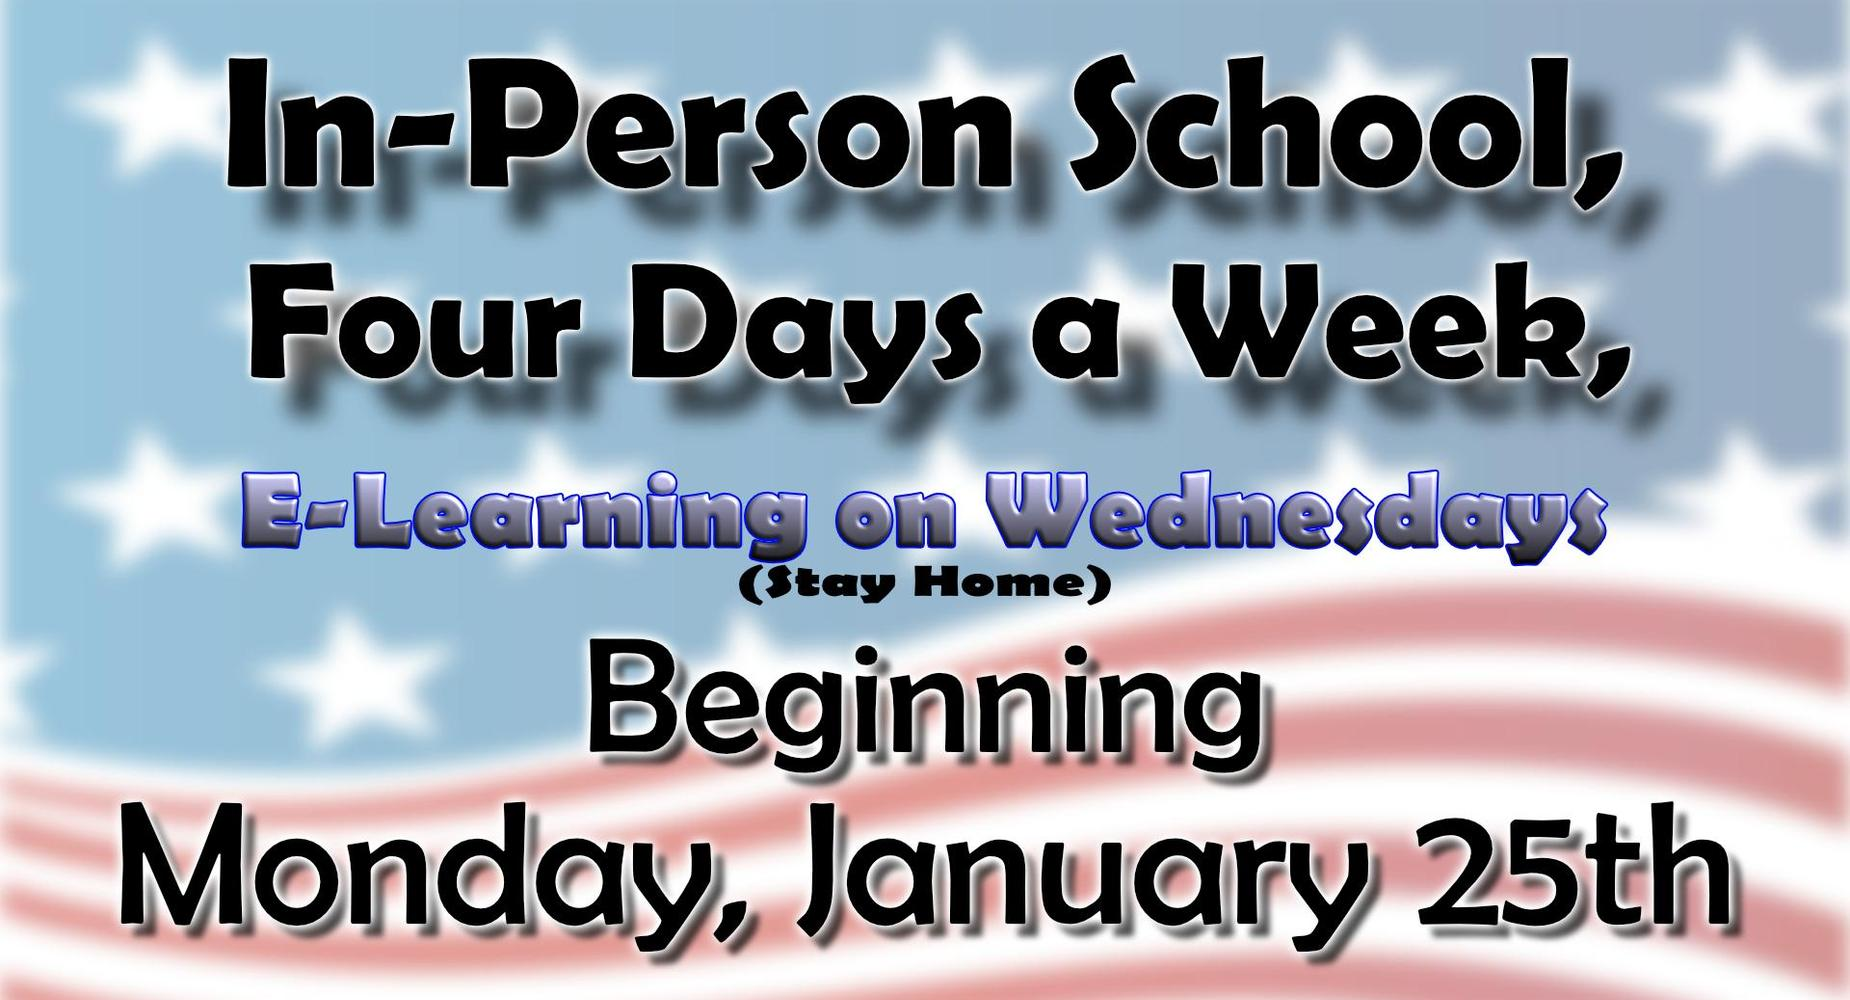 In-Person Learning 4 days a week begins jan 25